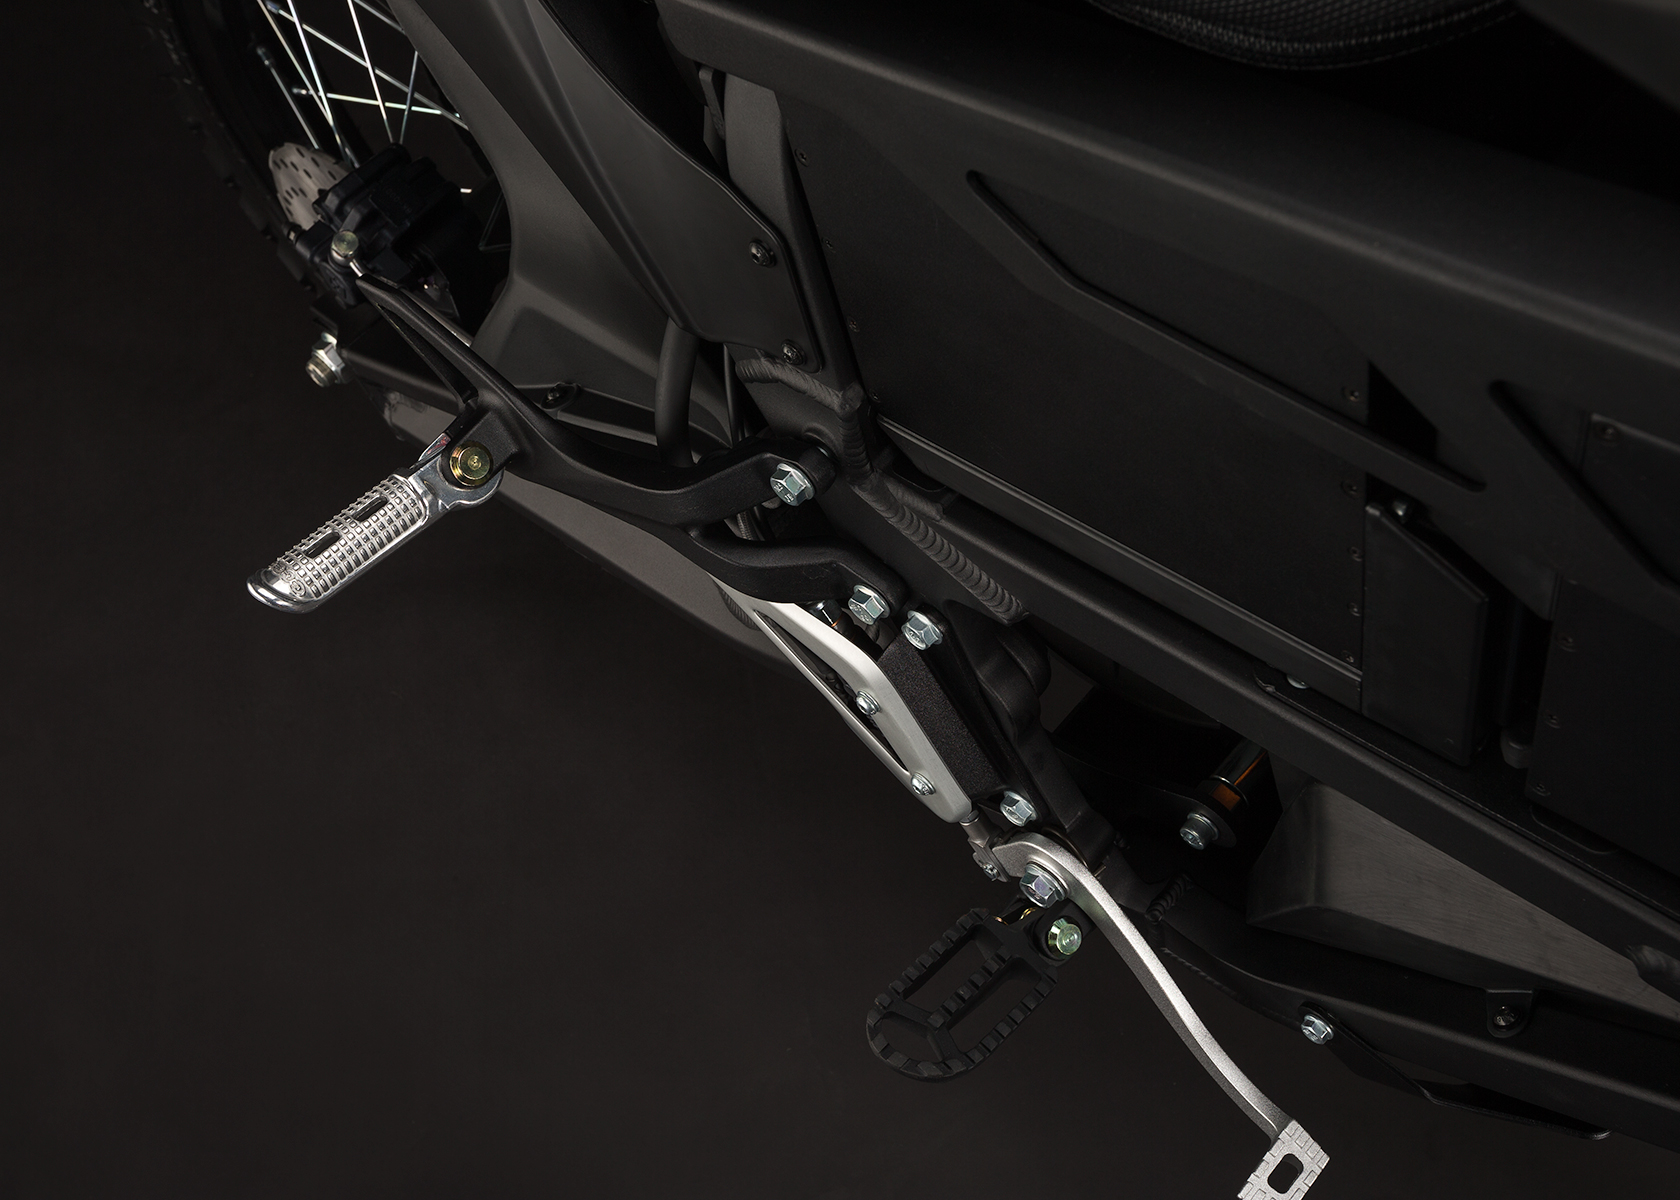 '.2014 Zero FX Electric Motorcycle: Footpegs.'